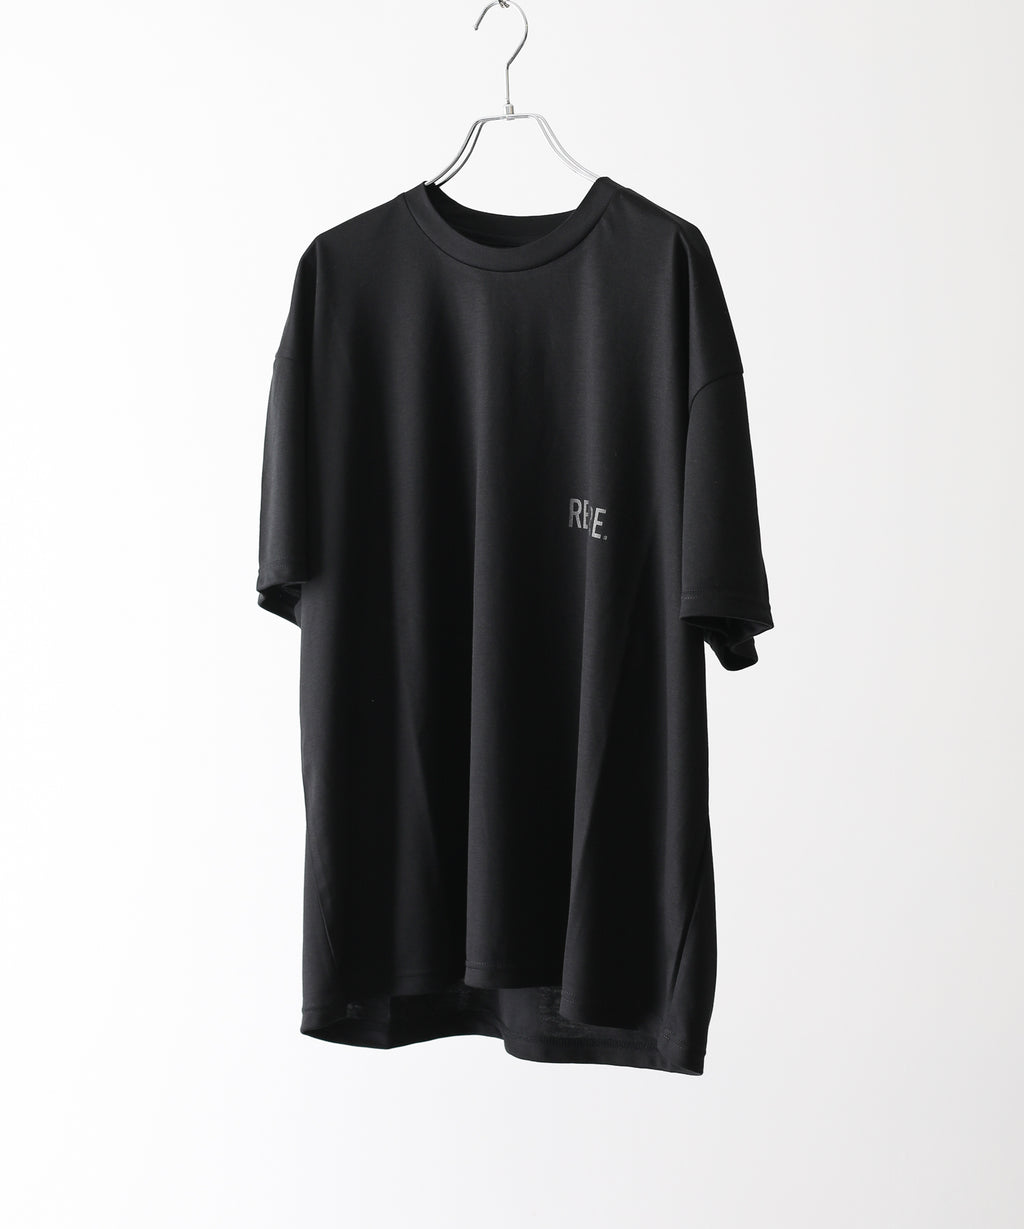 stein シュタイン PRINT TEE - RE LOOP - BLACK  ST.257  session